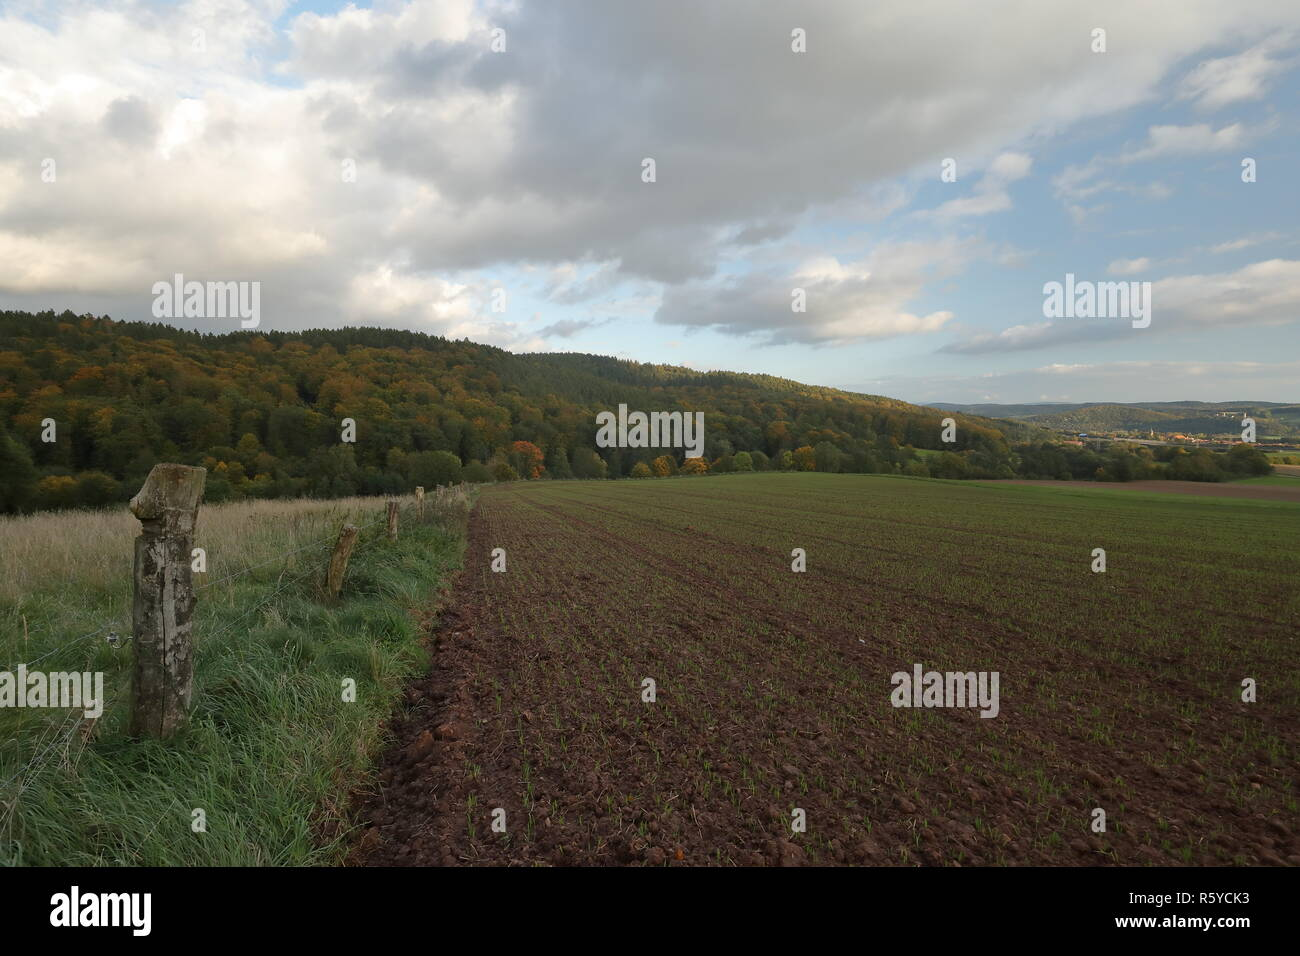 agriculture and fields in germany Stock Photo